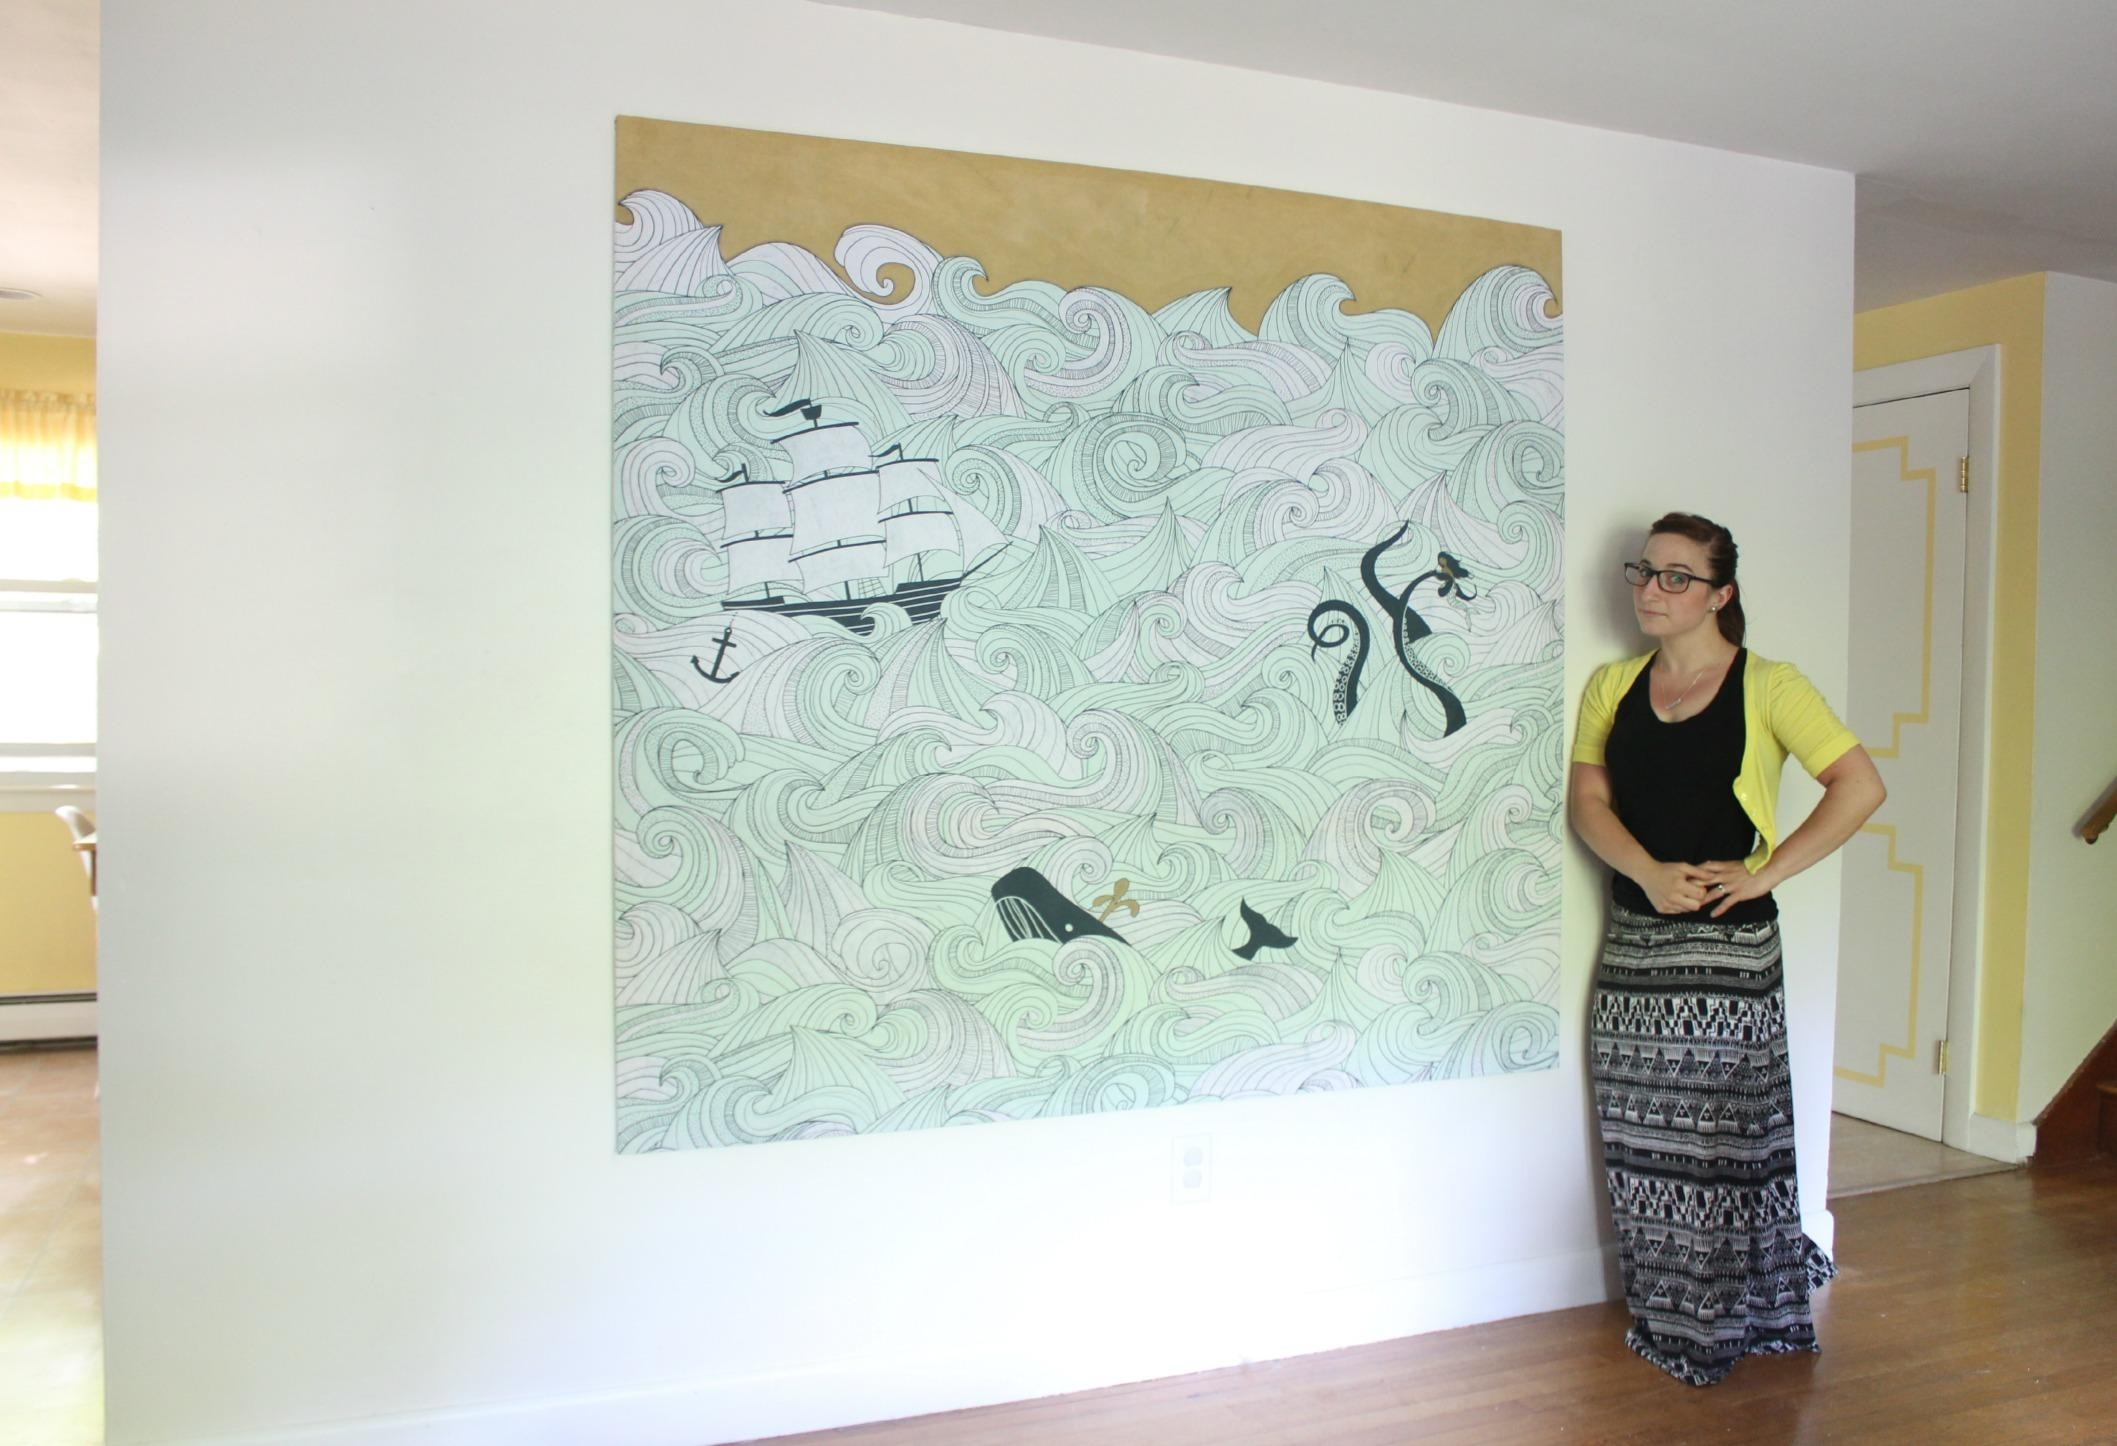 Diy Stretched Fabric Canvas (With A Shower Curtain!) | Stephanie With Regard To Fabric Canvas Wall Art (Image 9 of 20)